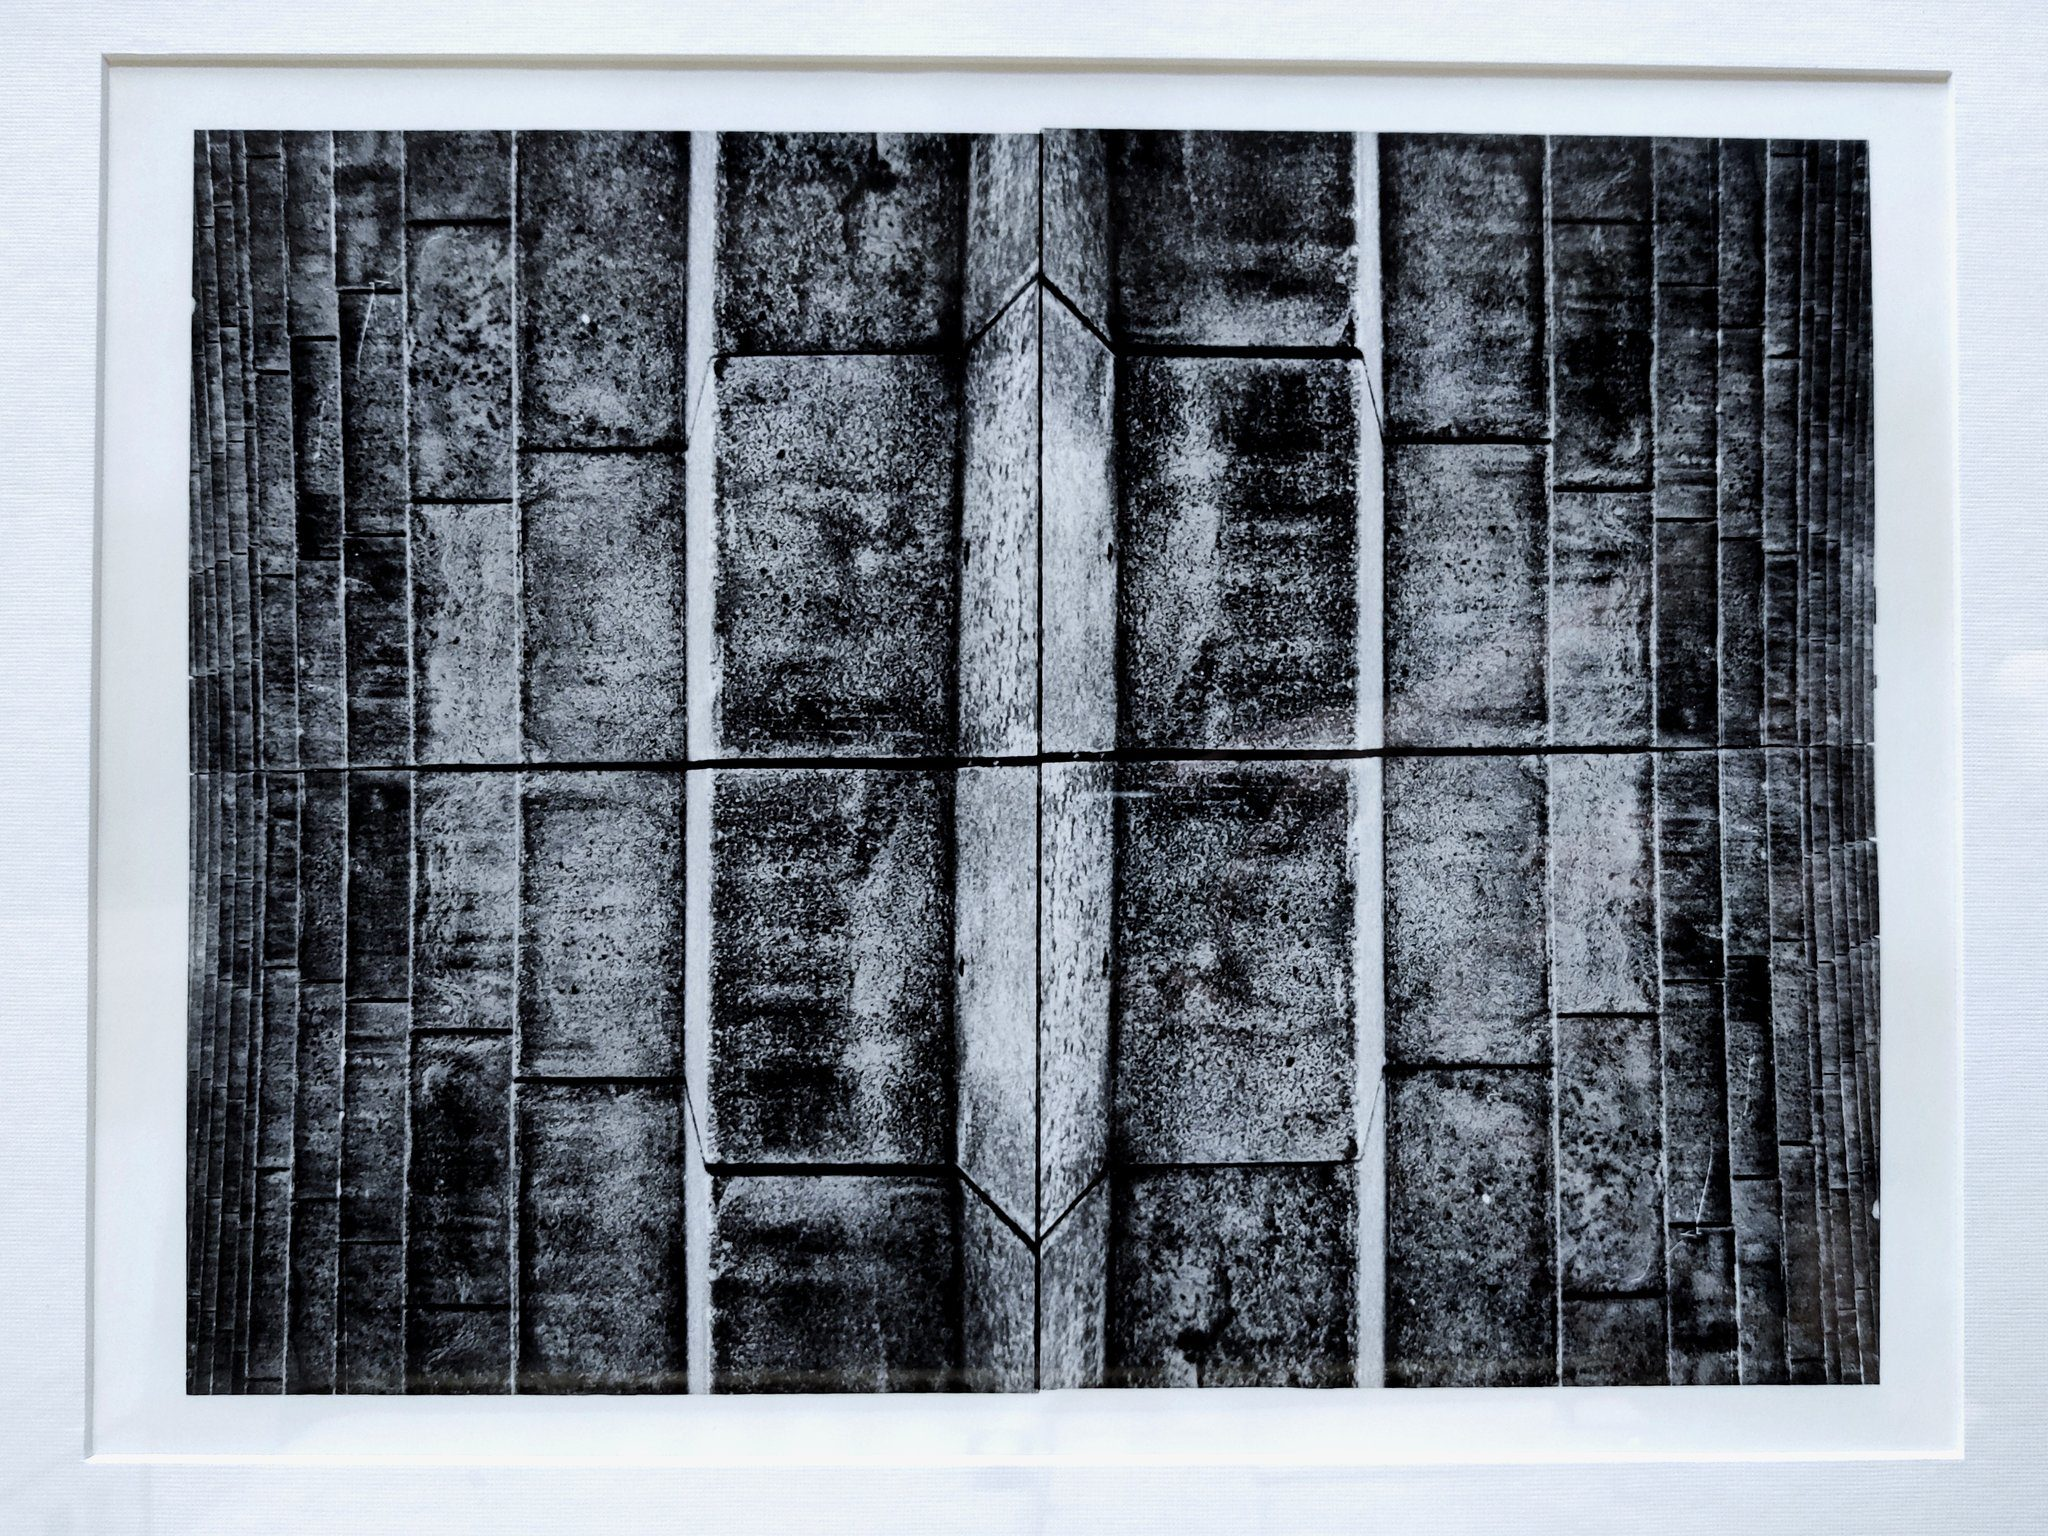 @Virgil_Roger @ILFORDPhoto makes the nicest paper, it was my go-to choice for my first ever hand printed solo show a while back. Let's throwback for the #fridayfavourites! Collages, a composite #fbprint on #ilford classic FB matte paper. #believeinfilm #believeinprint #believeincontrast